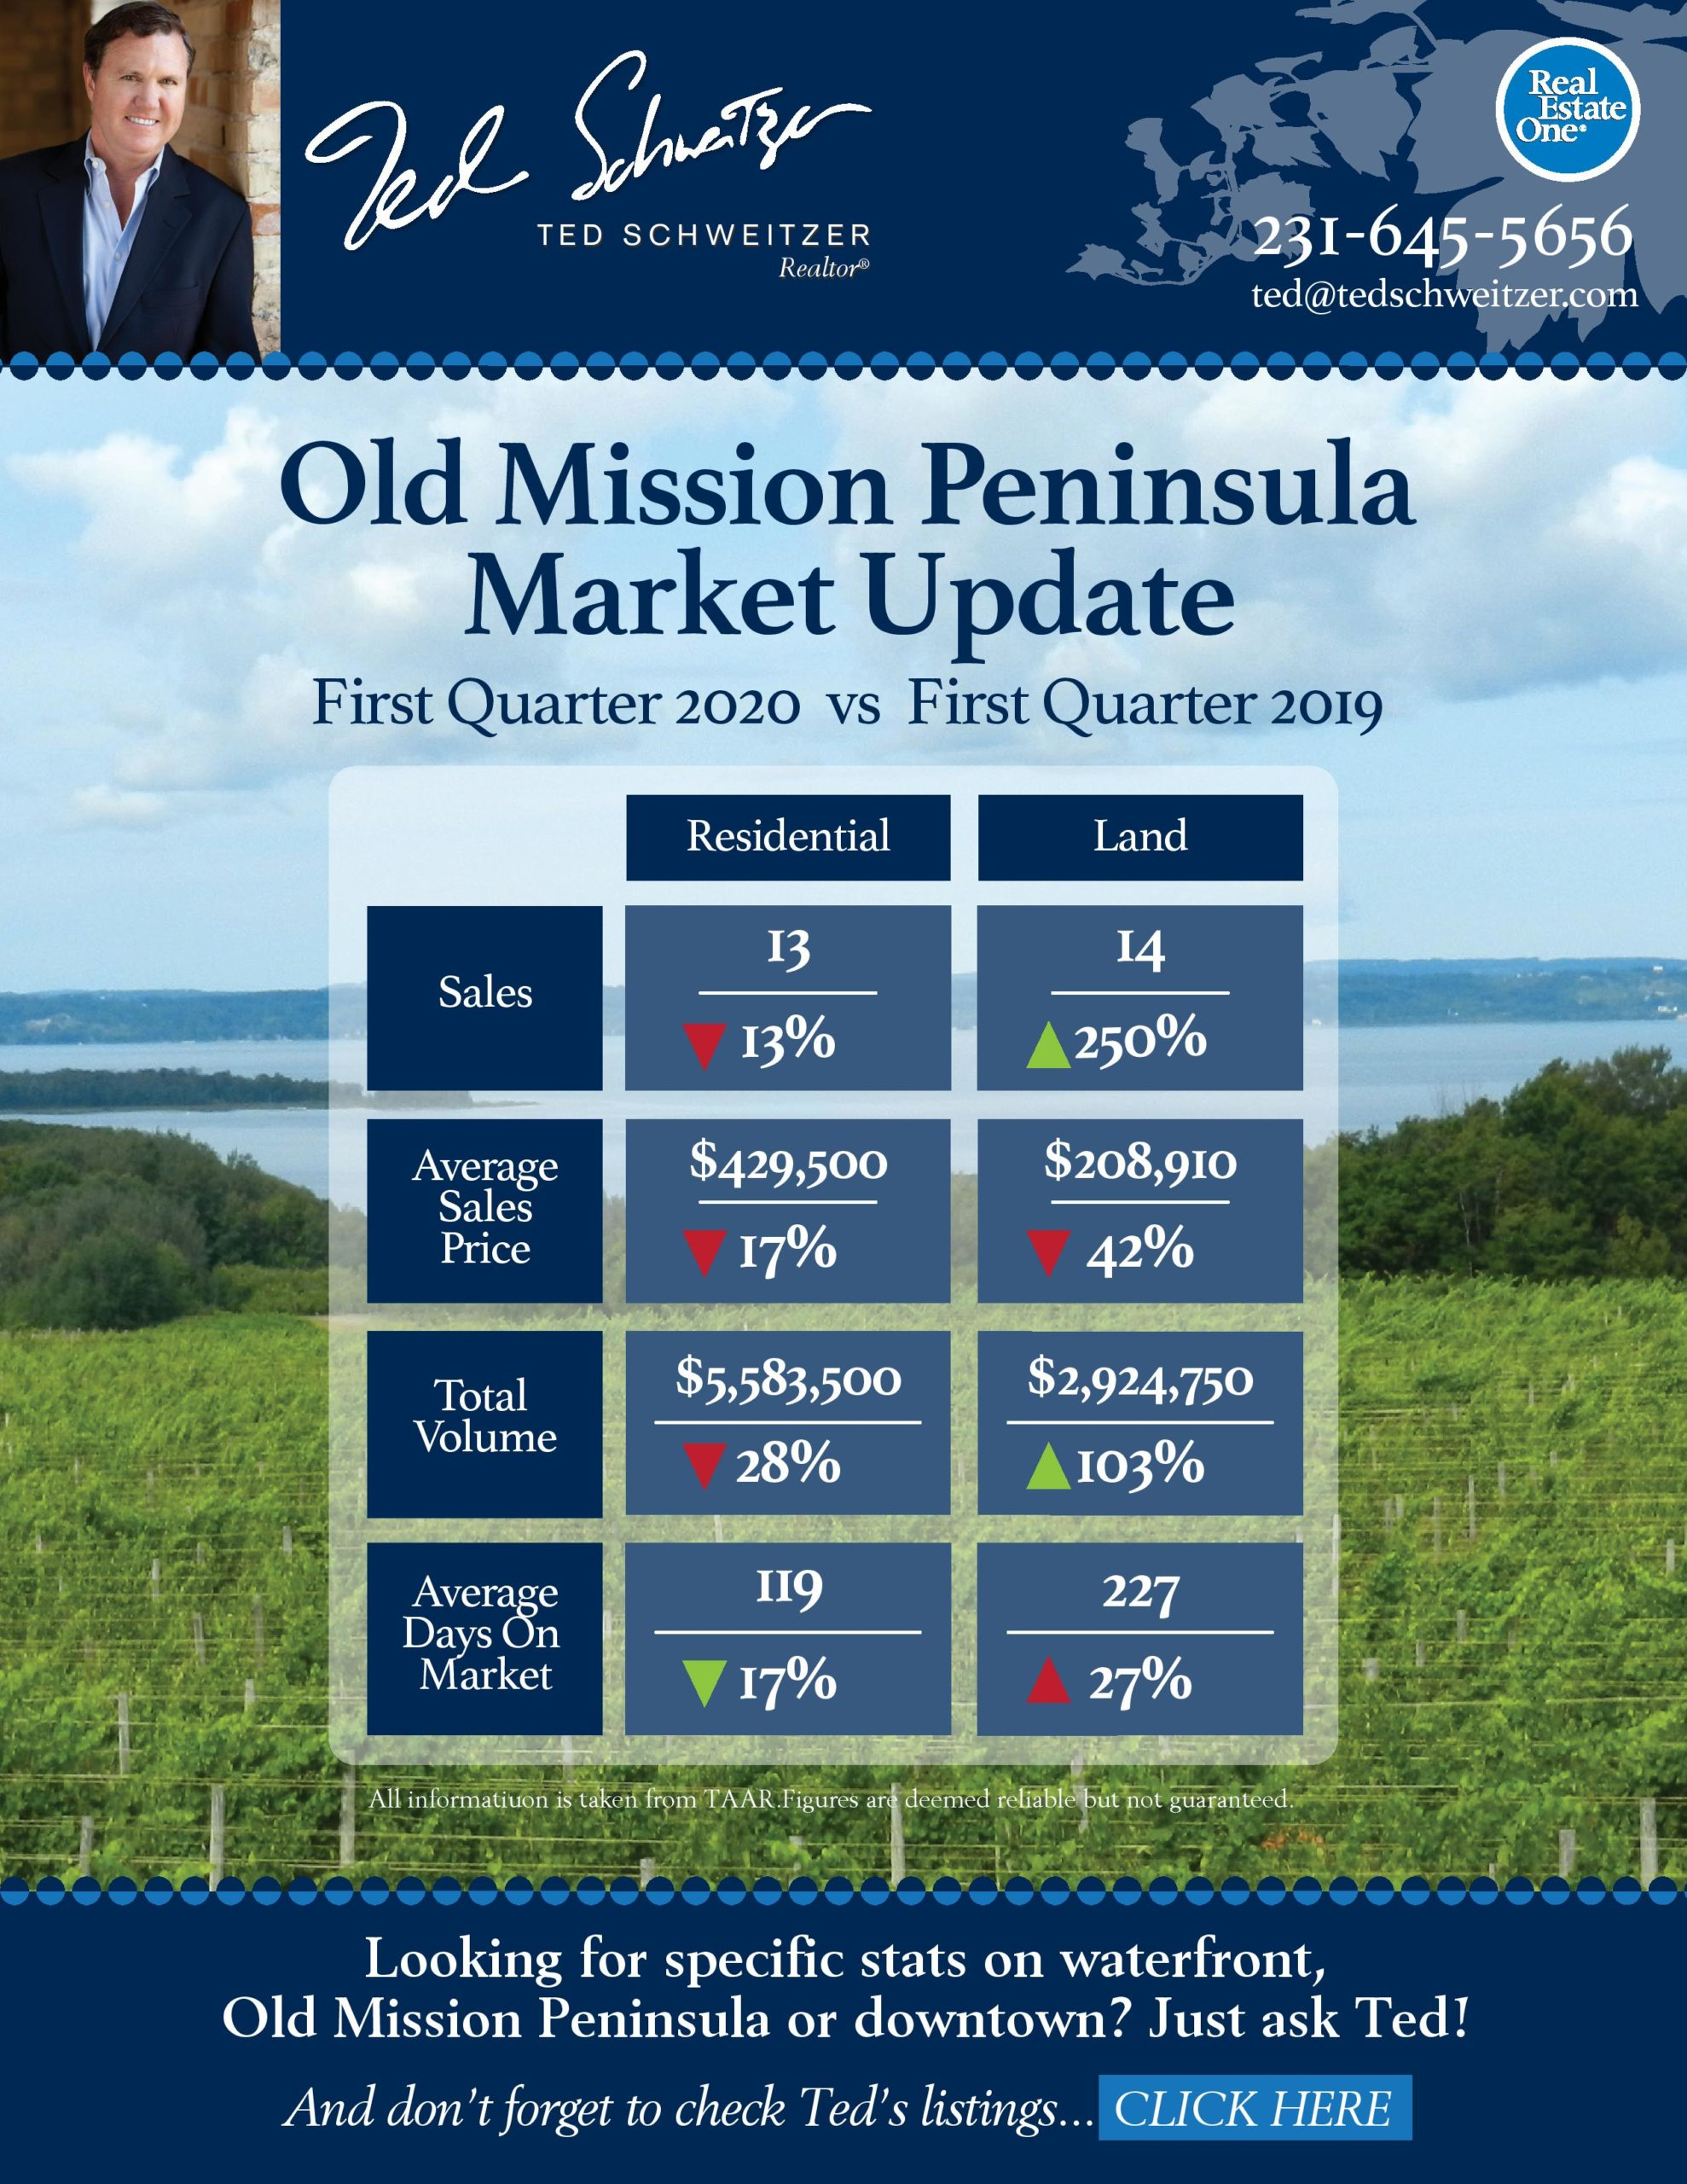 Old Mission Peninsula Real Estate Market via Ted Schweitzer of Real Estate One in Traverse City